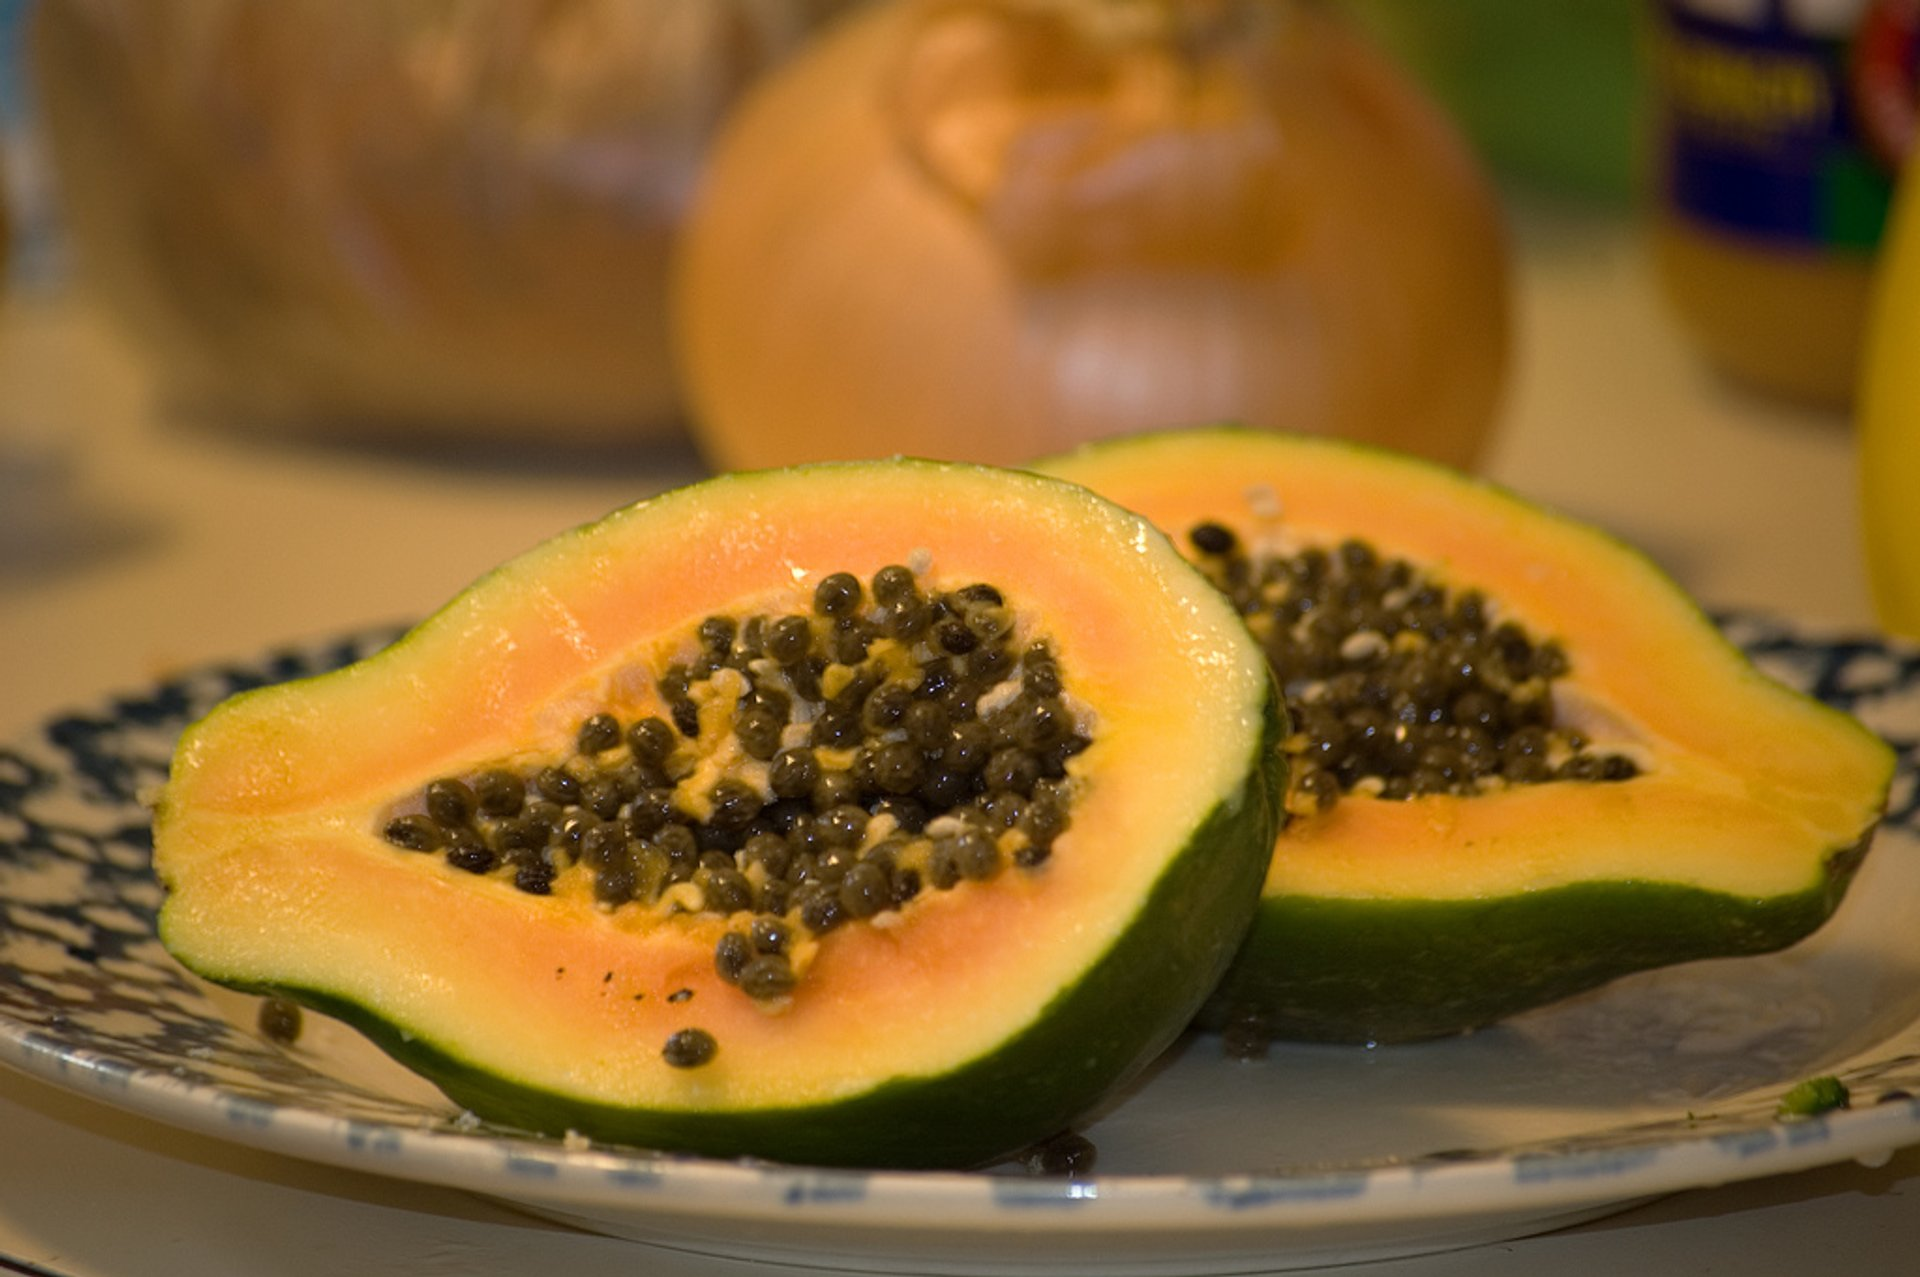 Papaya in Canary Islands - Best Season